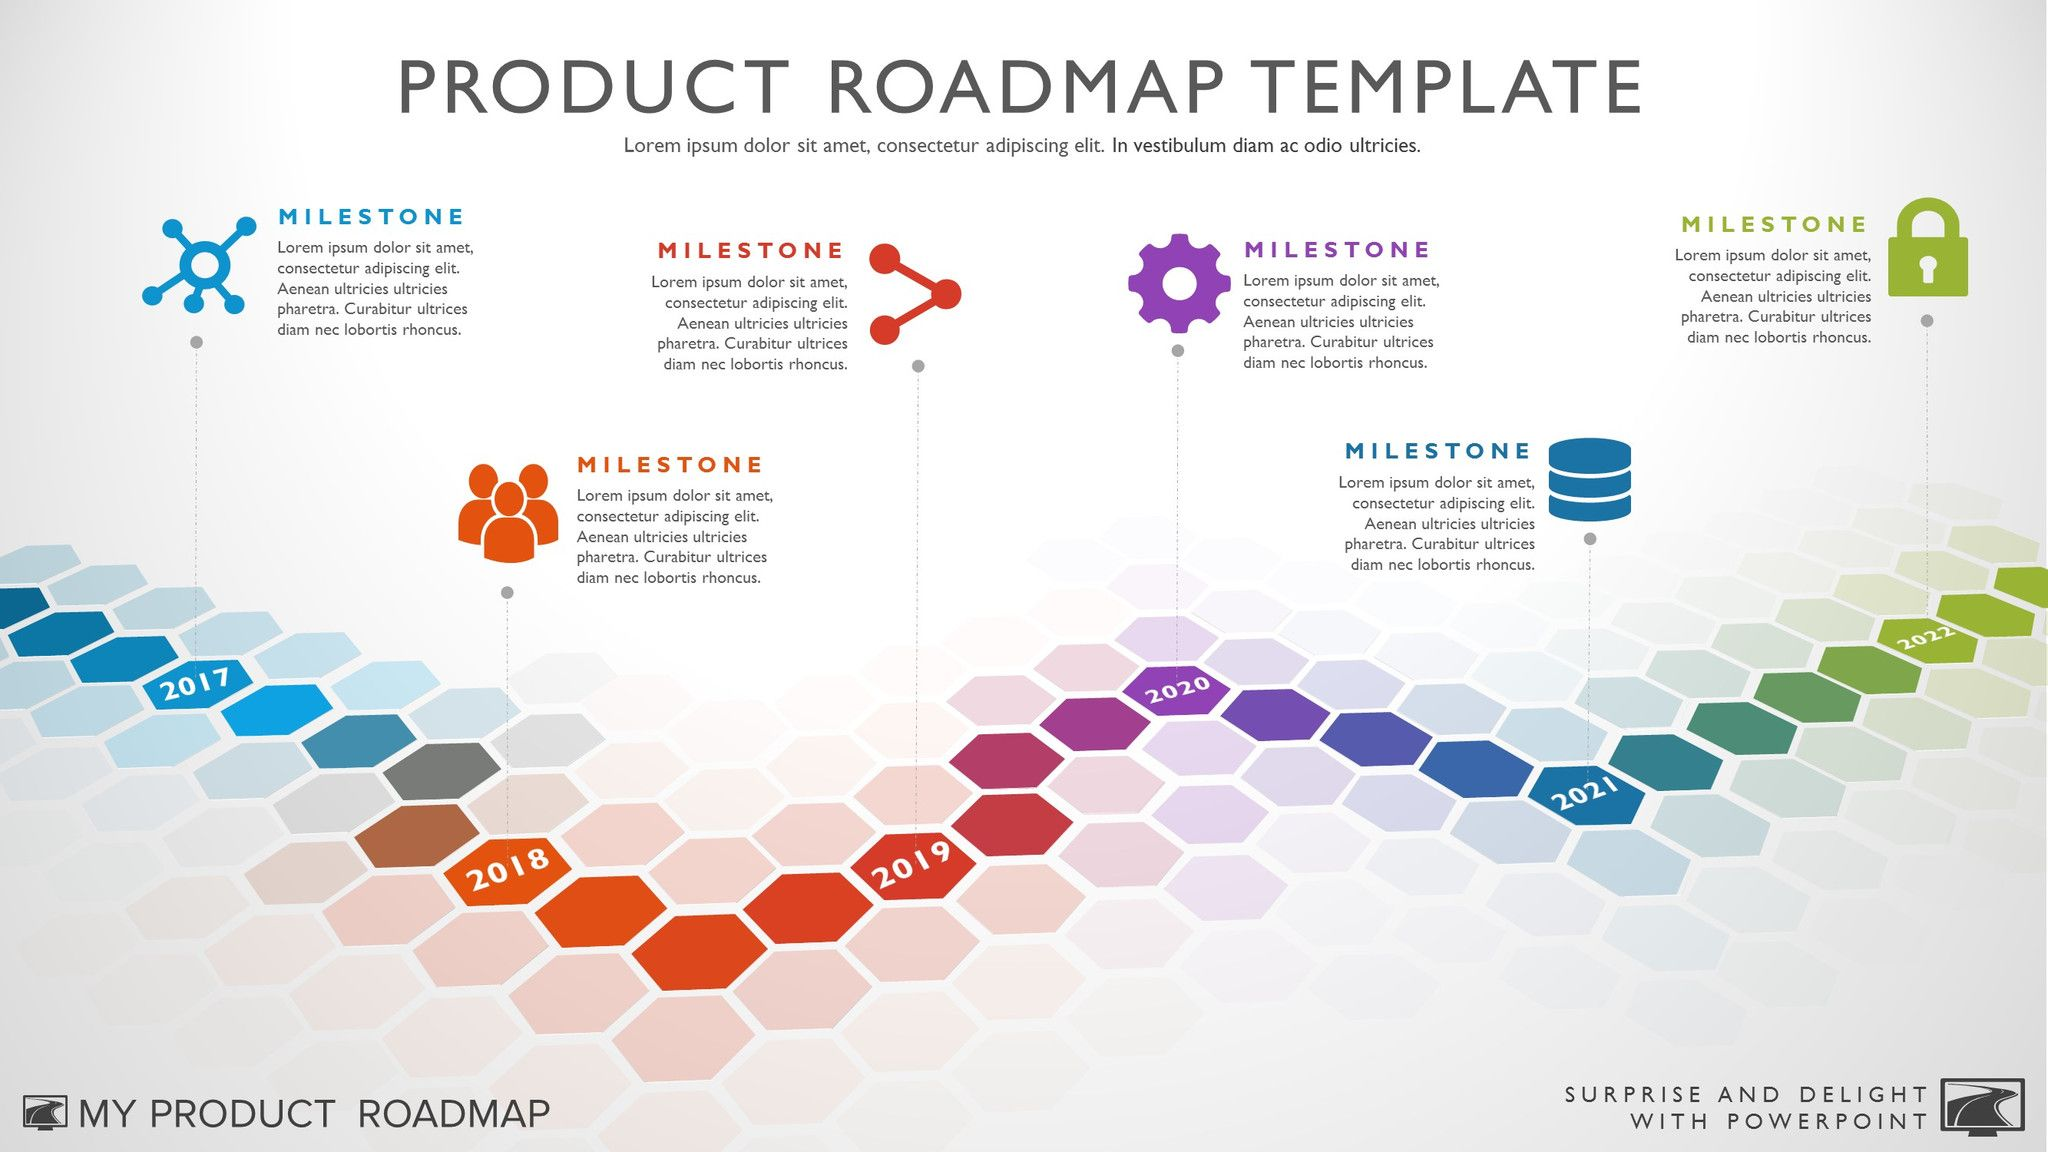 Six Phase Software Timeline Roadmap Powerpoint Template Product - Roadmap timeline template